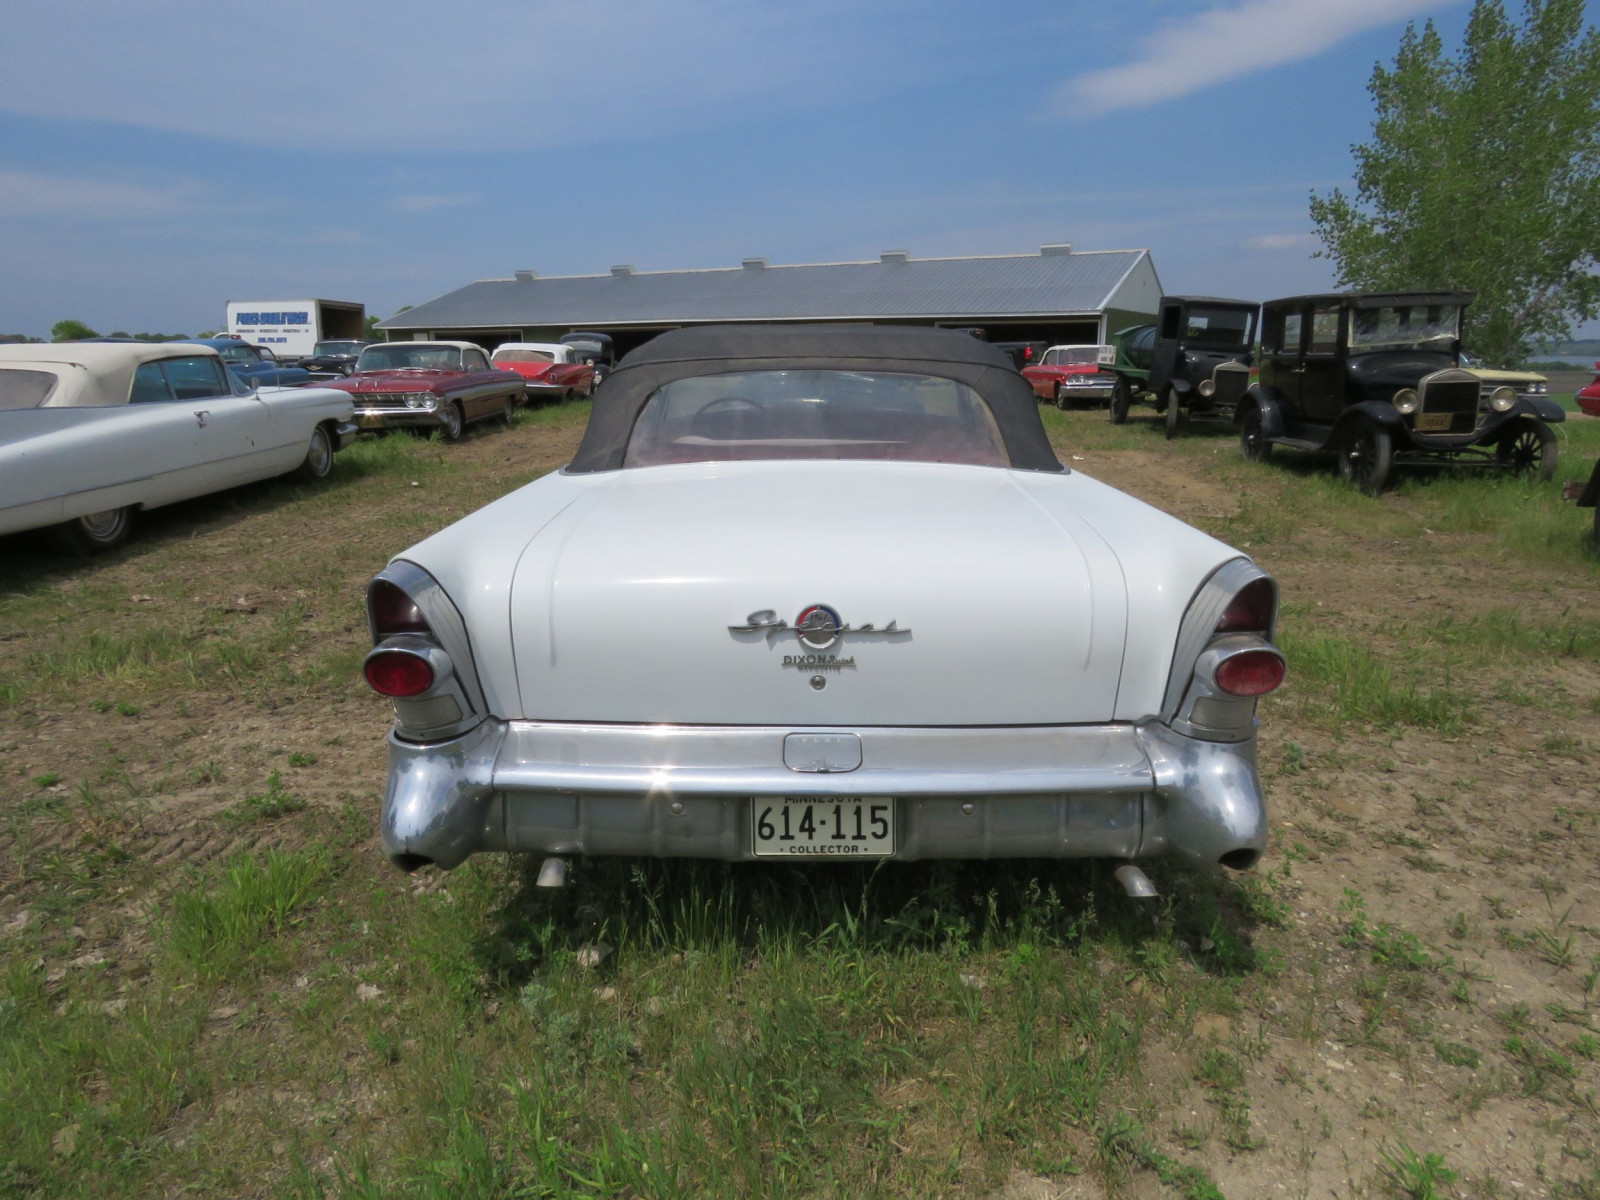 1957 Buick Special Convertible D1110085 - Image 5